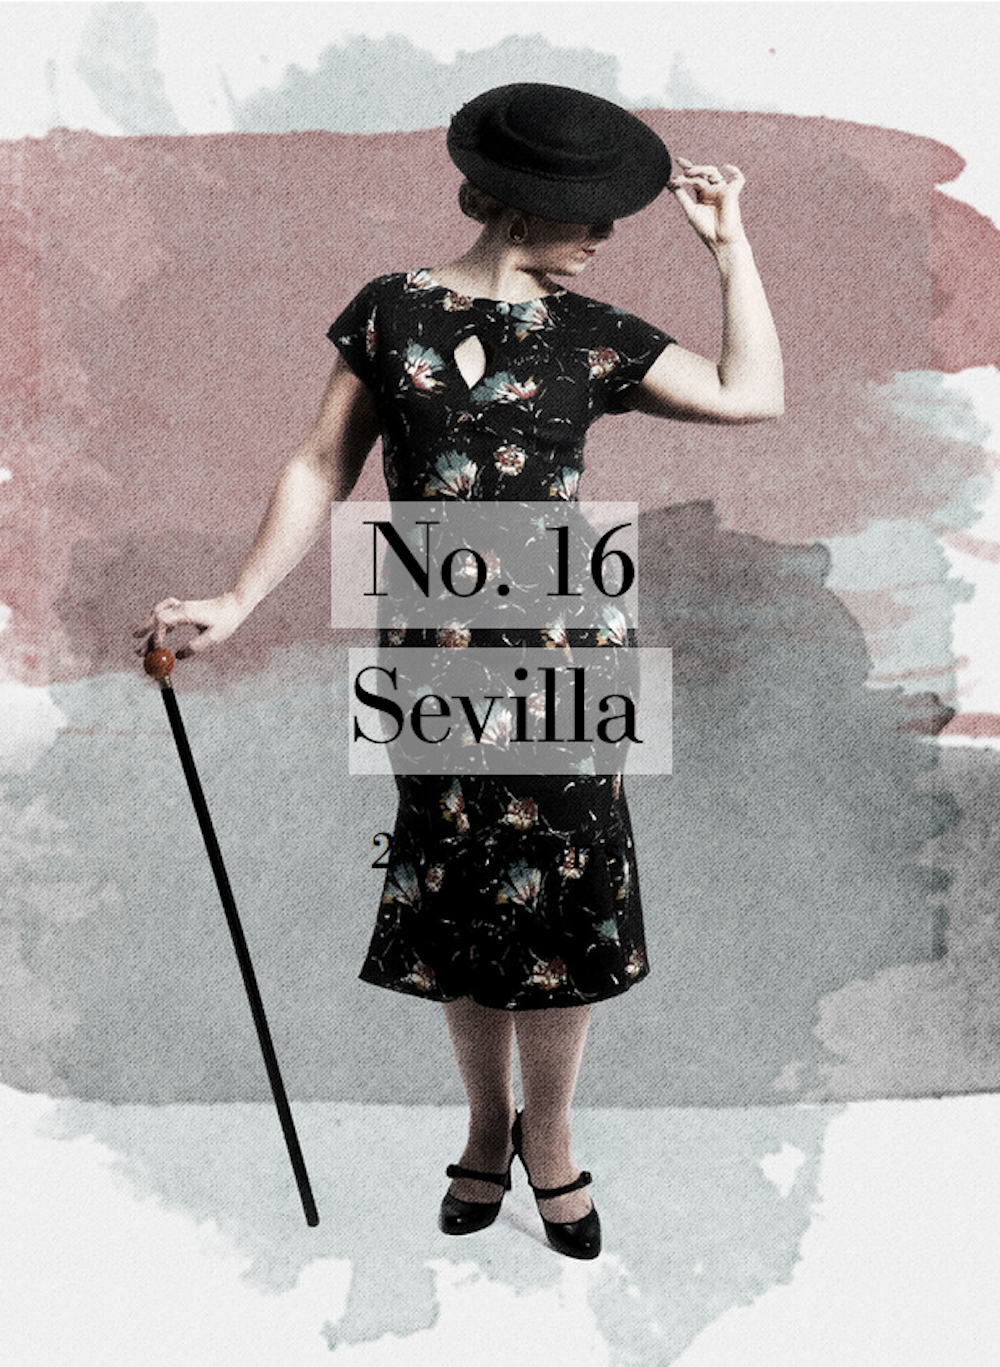 No. 16 Sevilla - How To Do Fashion